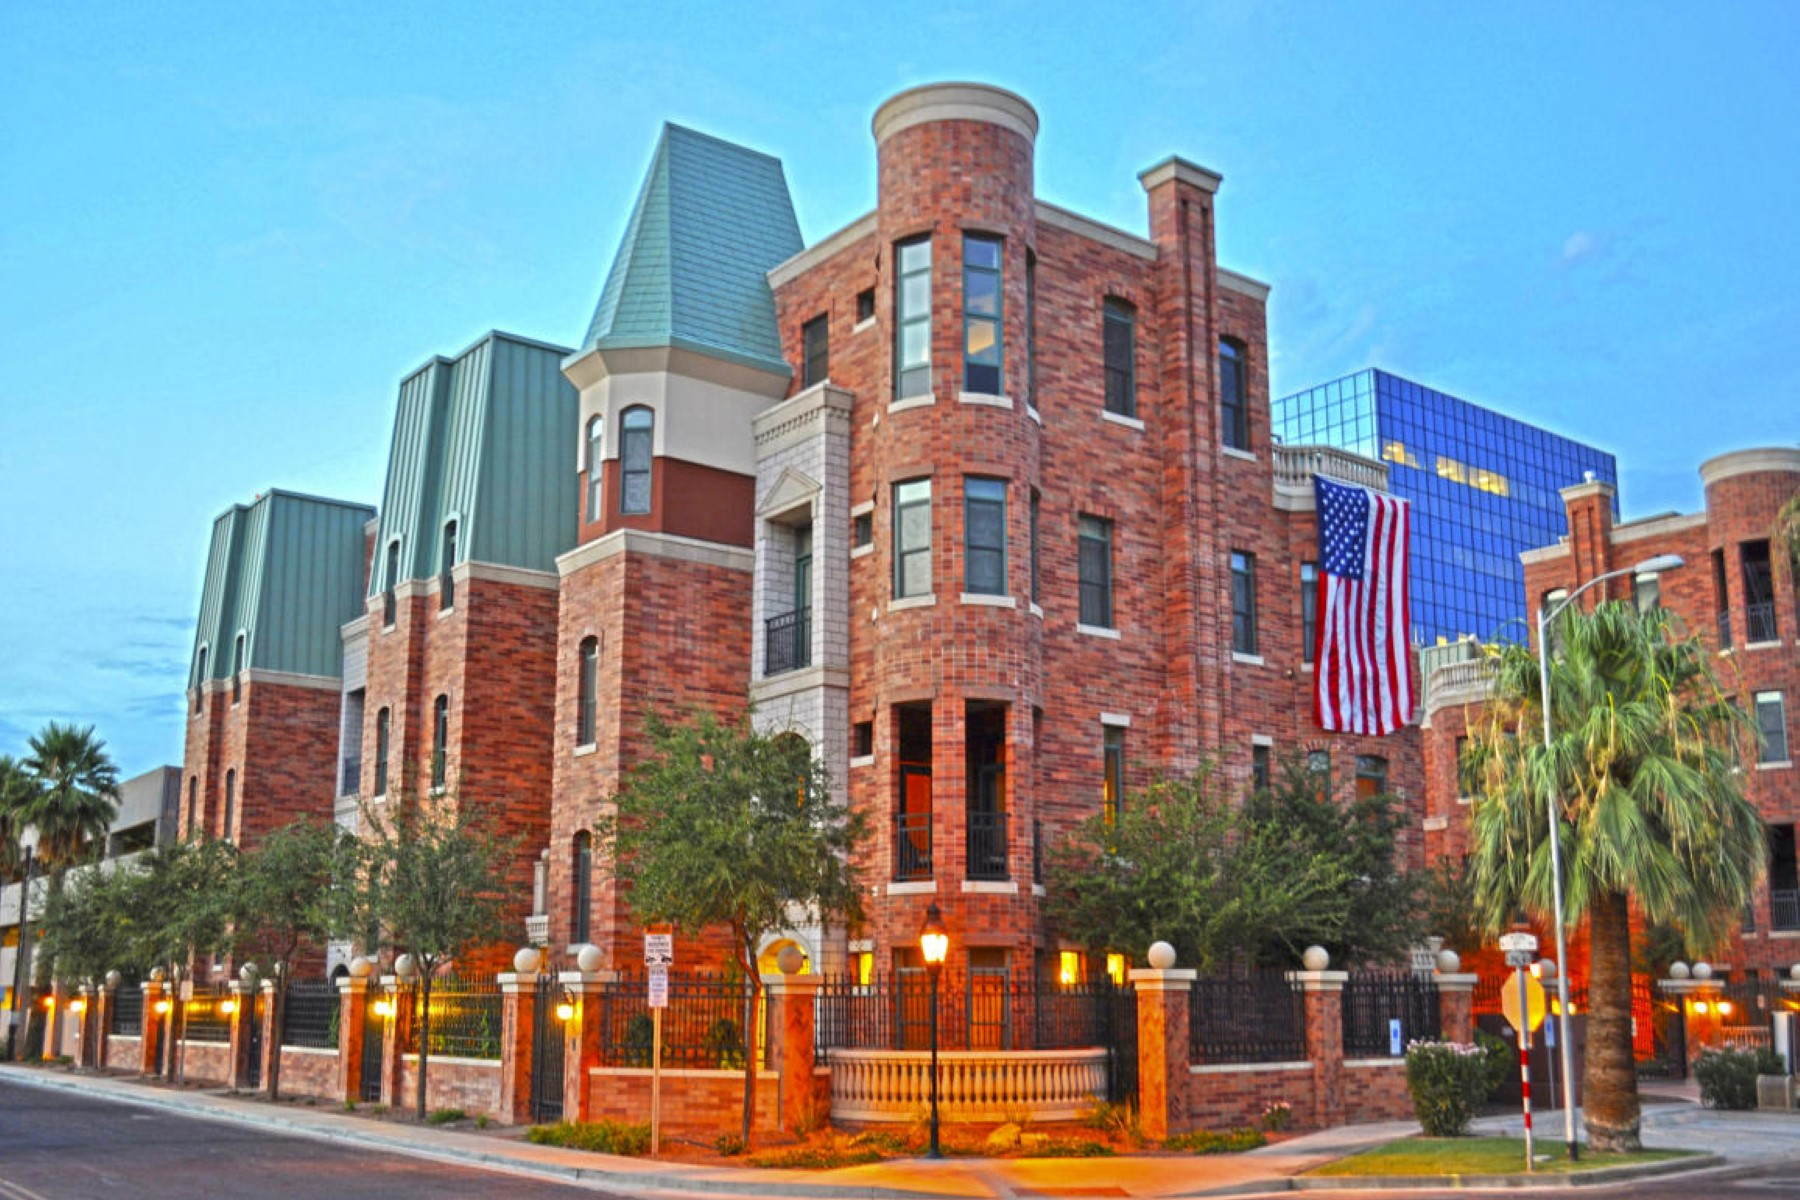 타운하우스 용 매매 에 One of Phoenix's most prestigious addresses 2001 N 1st Ave Phoenix, 아리조나, 85003 미국